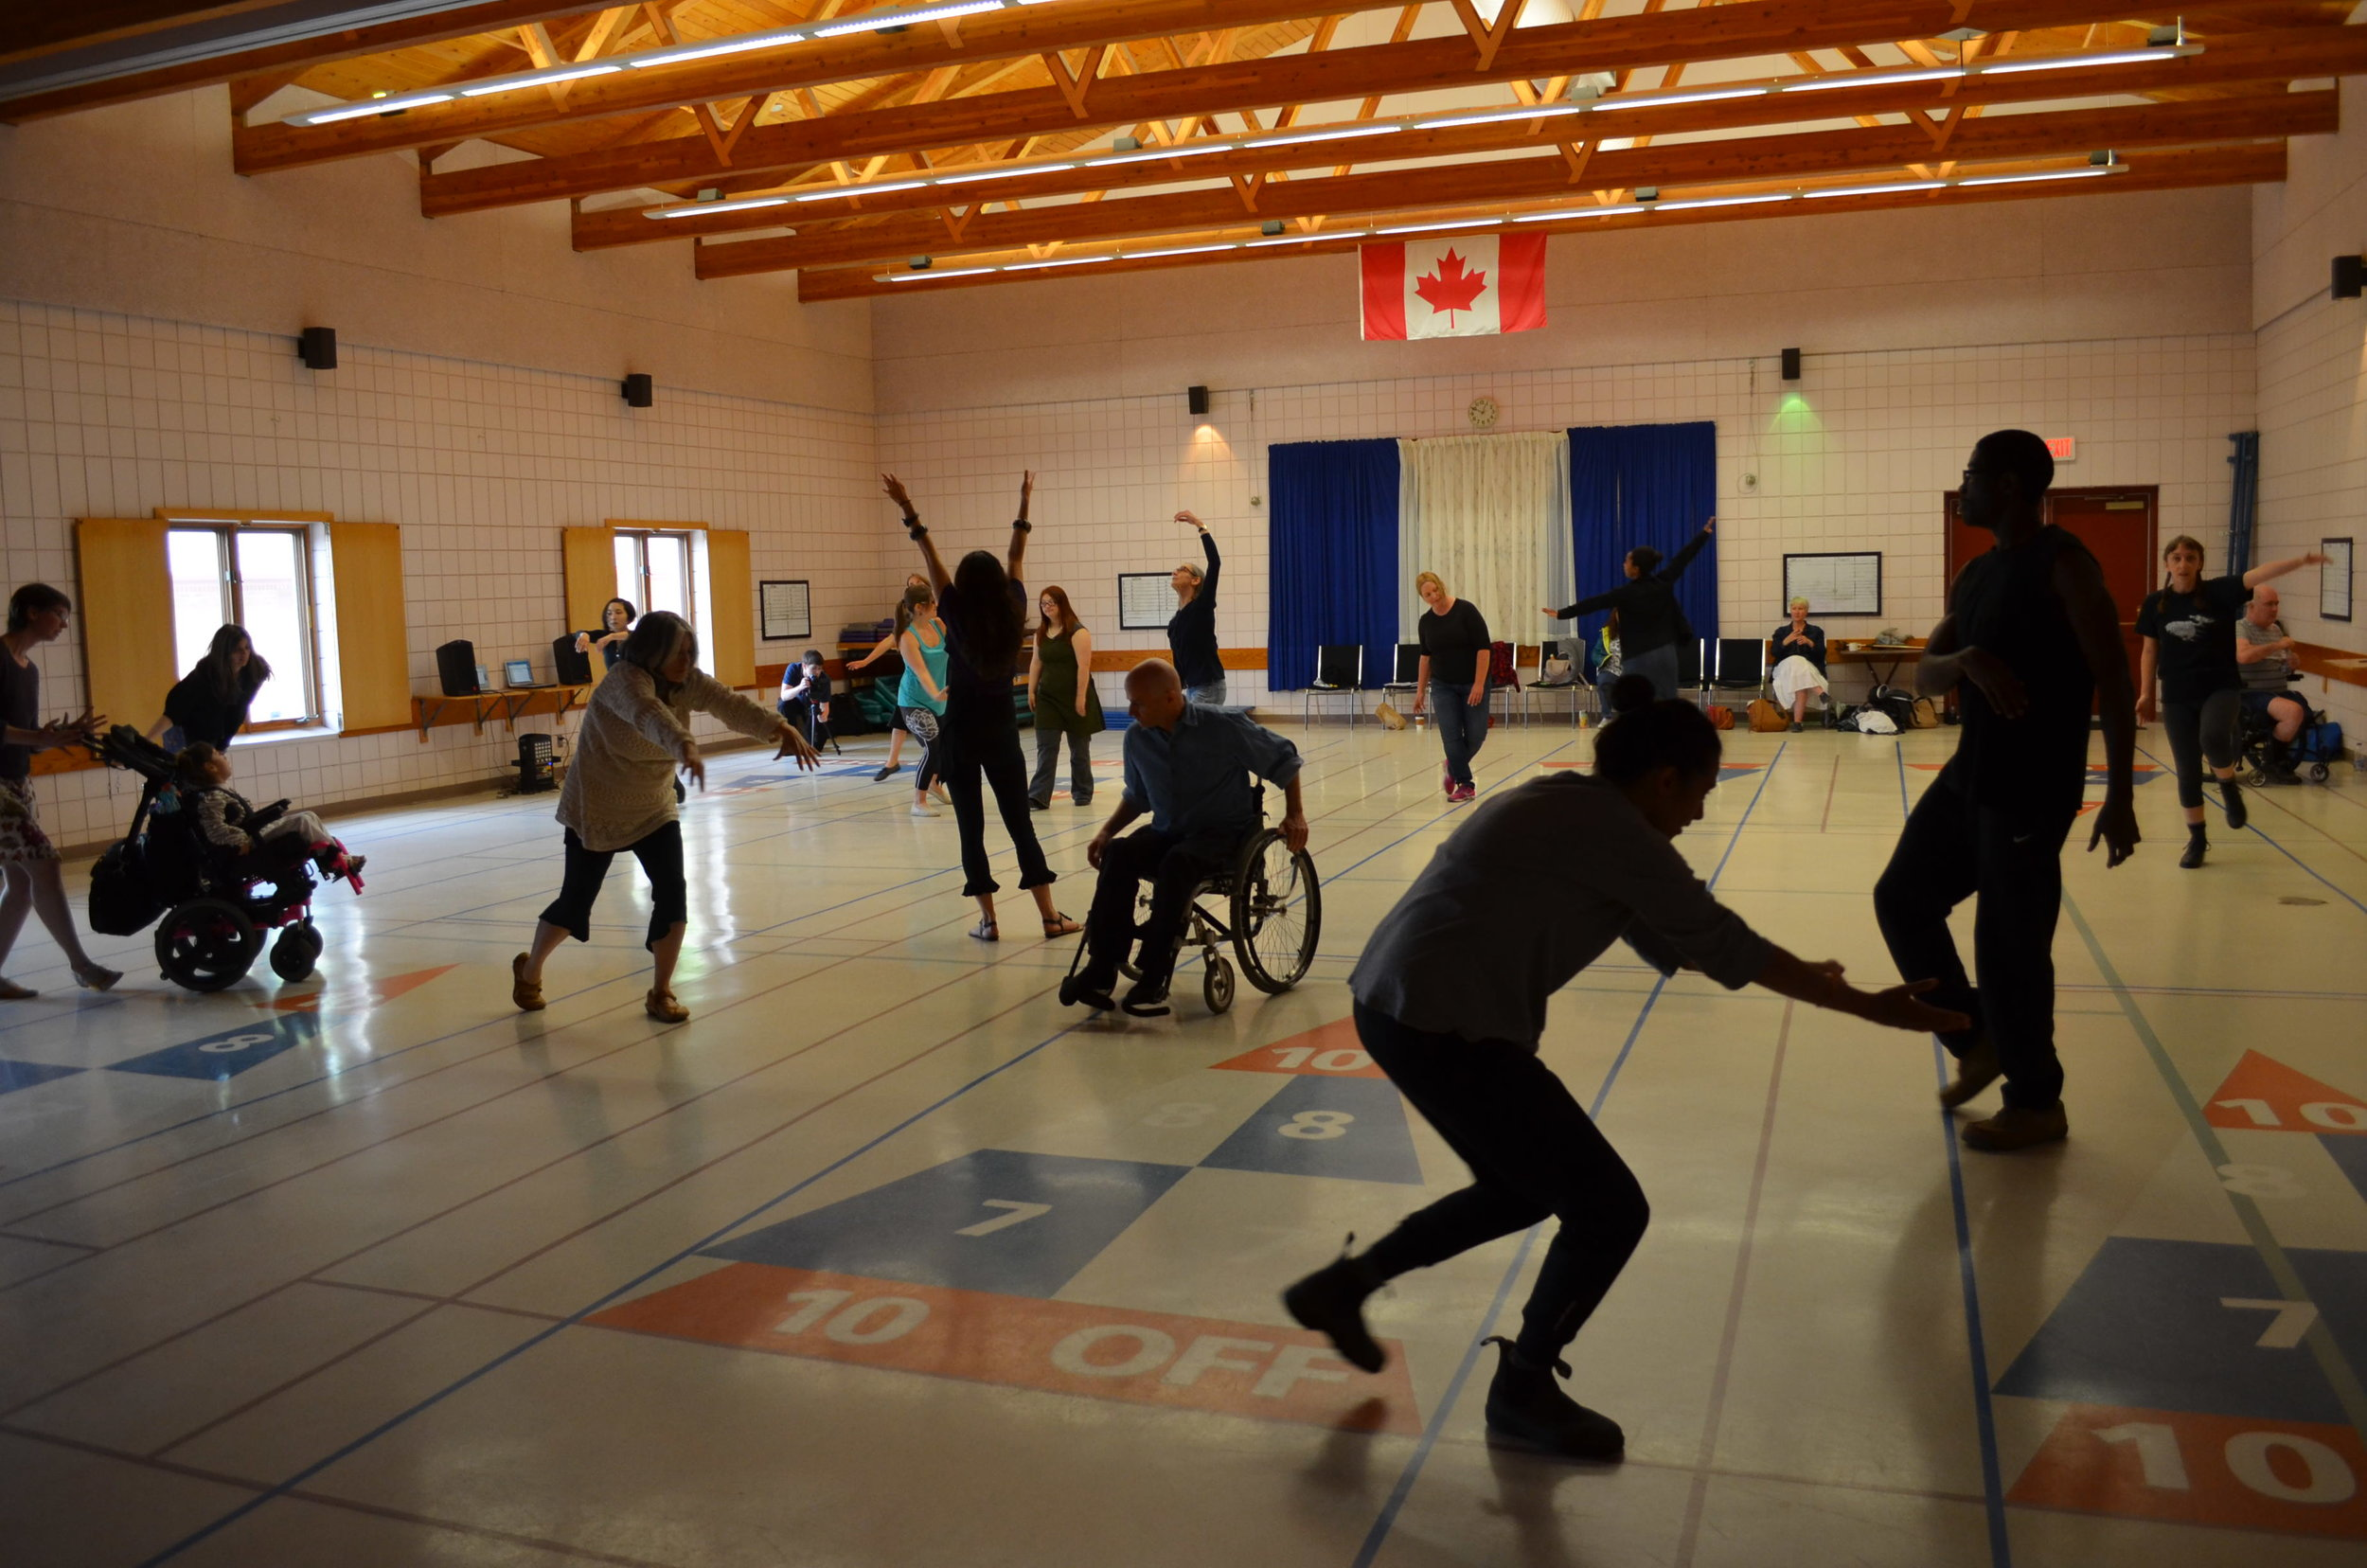 Flux - Flux is a free, no-experience-required workshop for people of all ages who would like to participate in a group movement experience. It can be tailored for dancers, non-dancers, or for mixed-abilities groups.